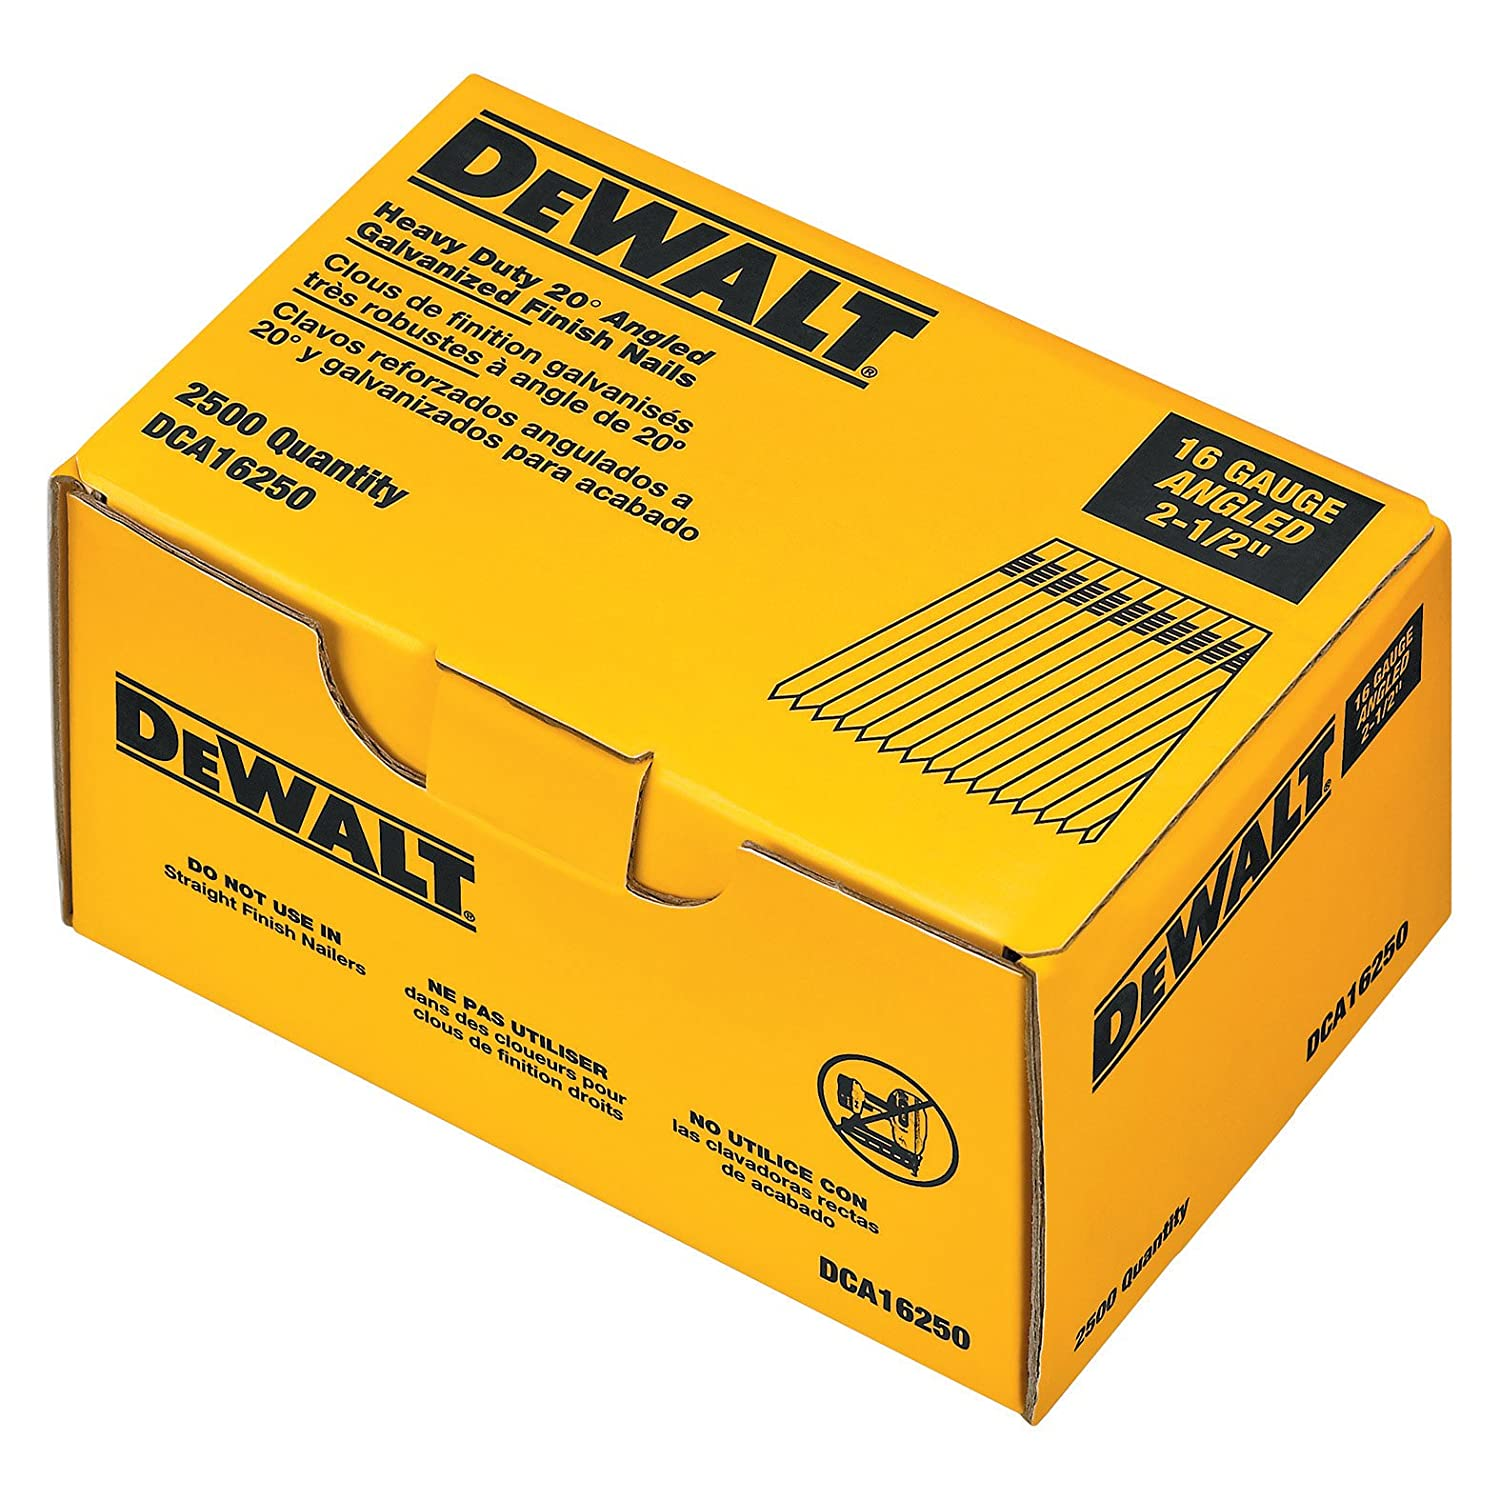 collated finish nails com hardware collated nails dewalt dca16250 2 1 2 inch by 16 gauge 20 degree finish nail 2 500 per box